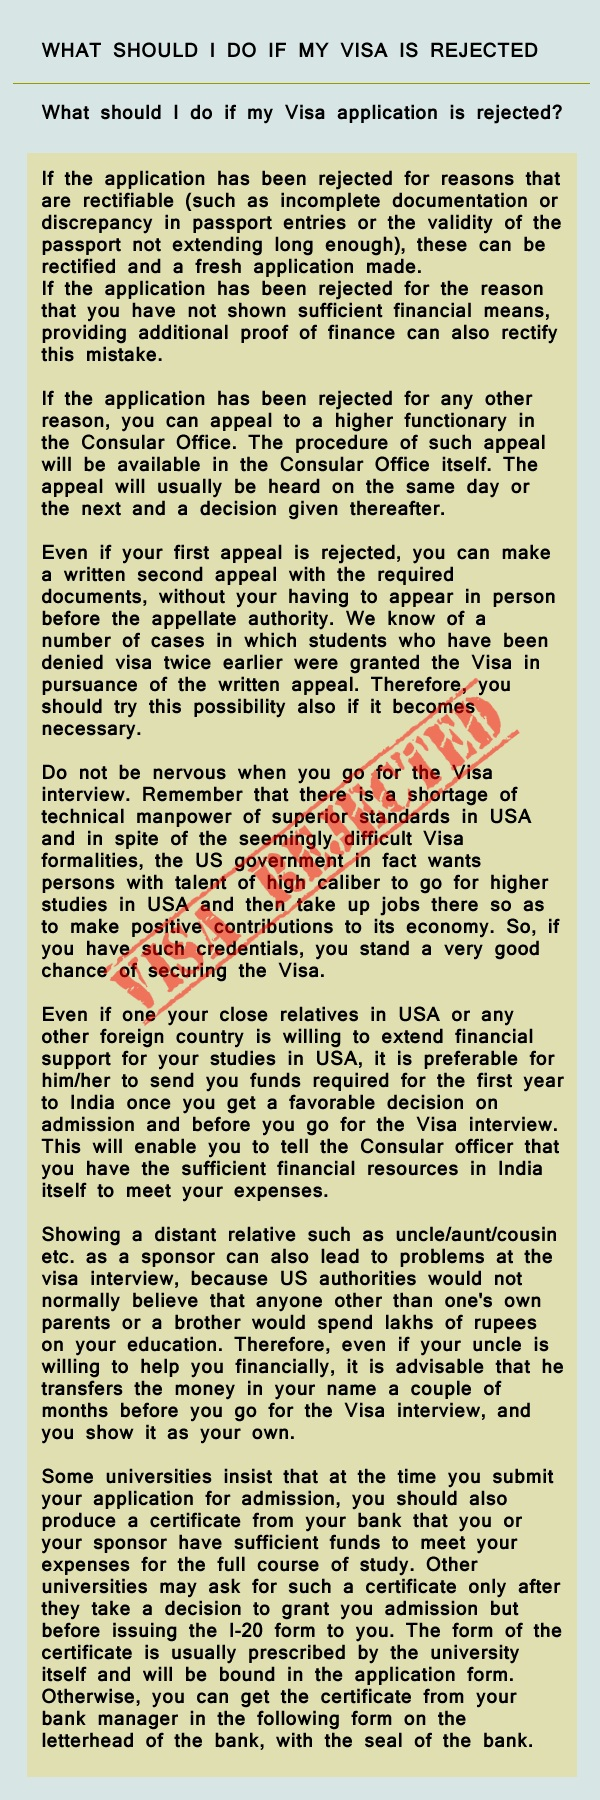 What Should I Do If My Visa Is Rejected